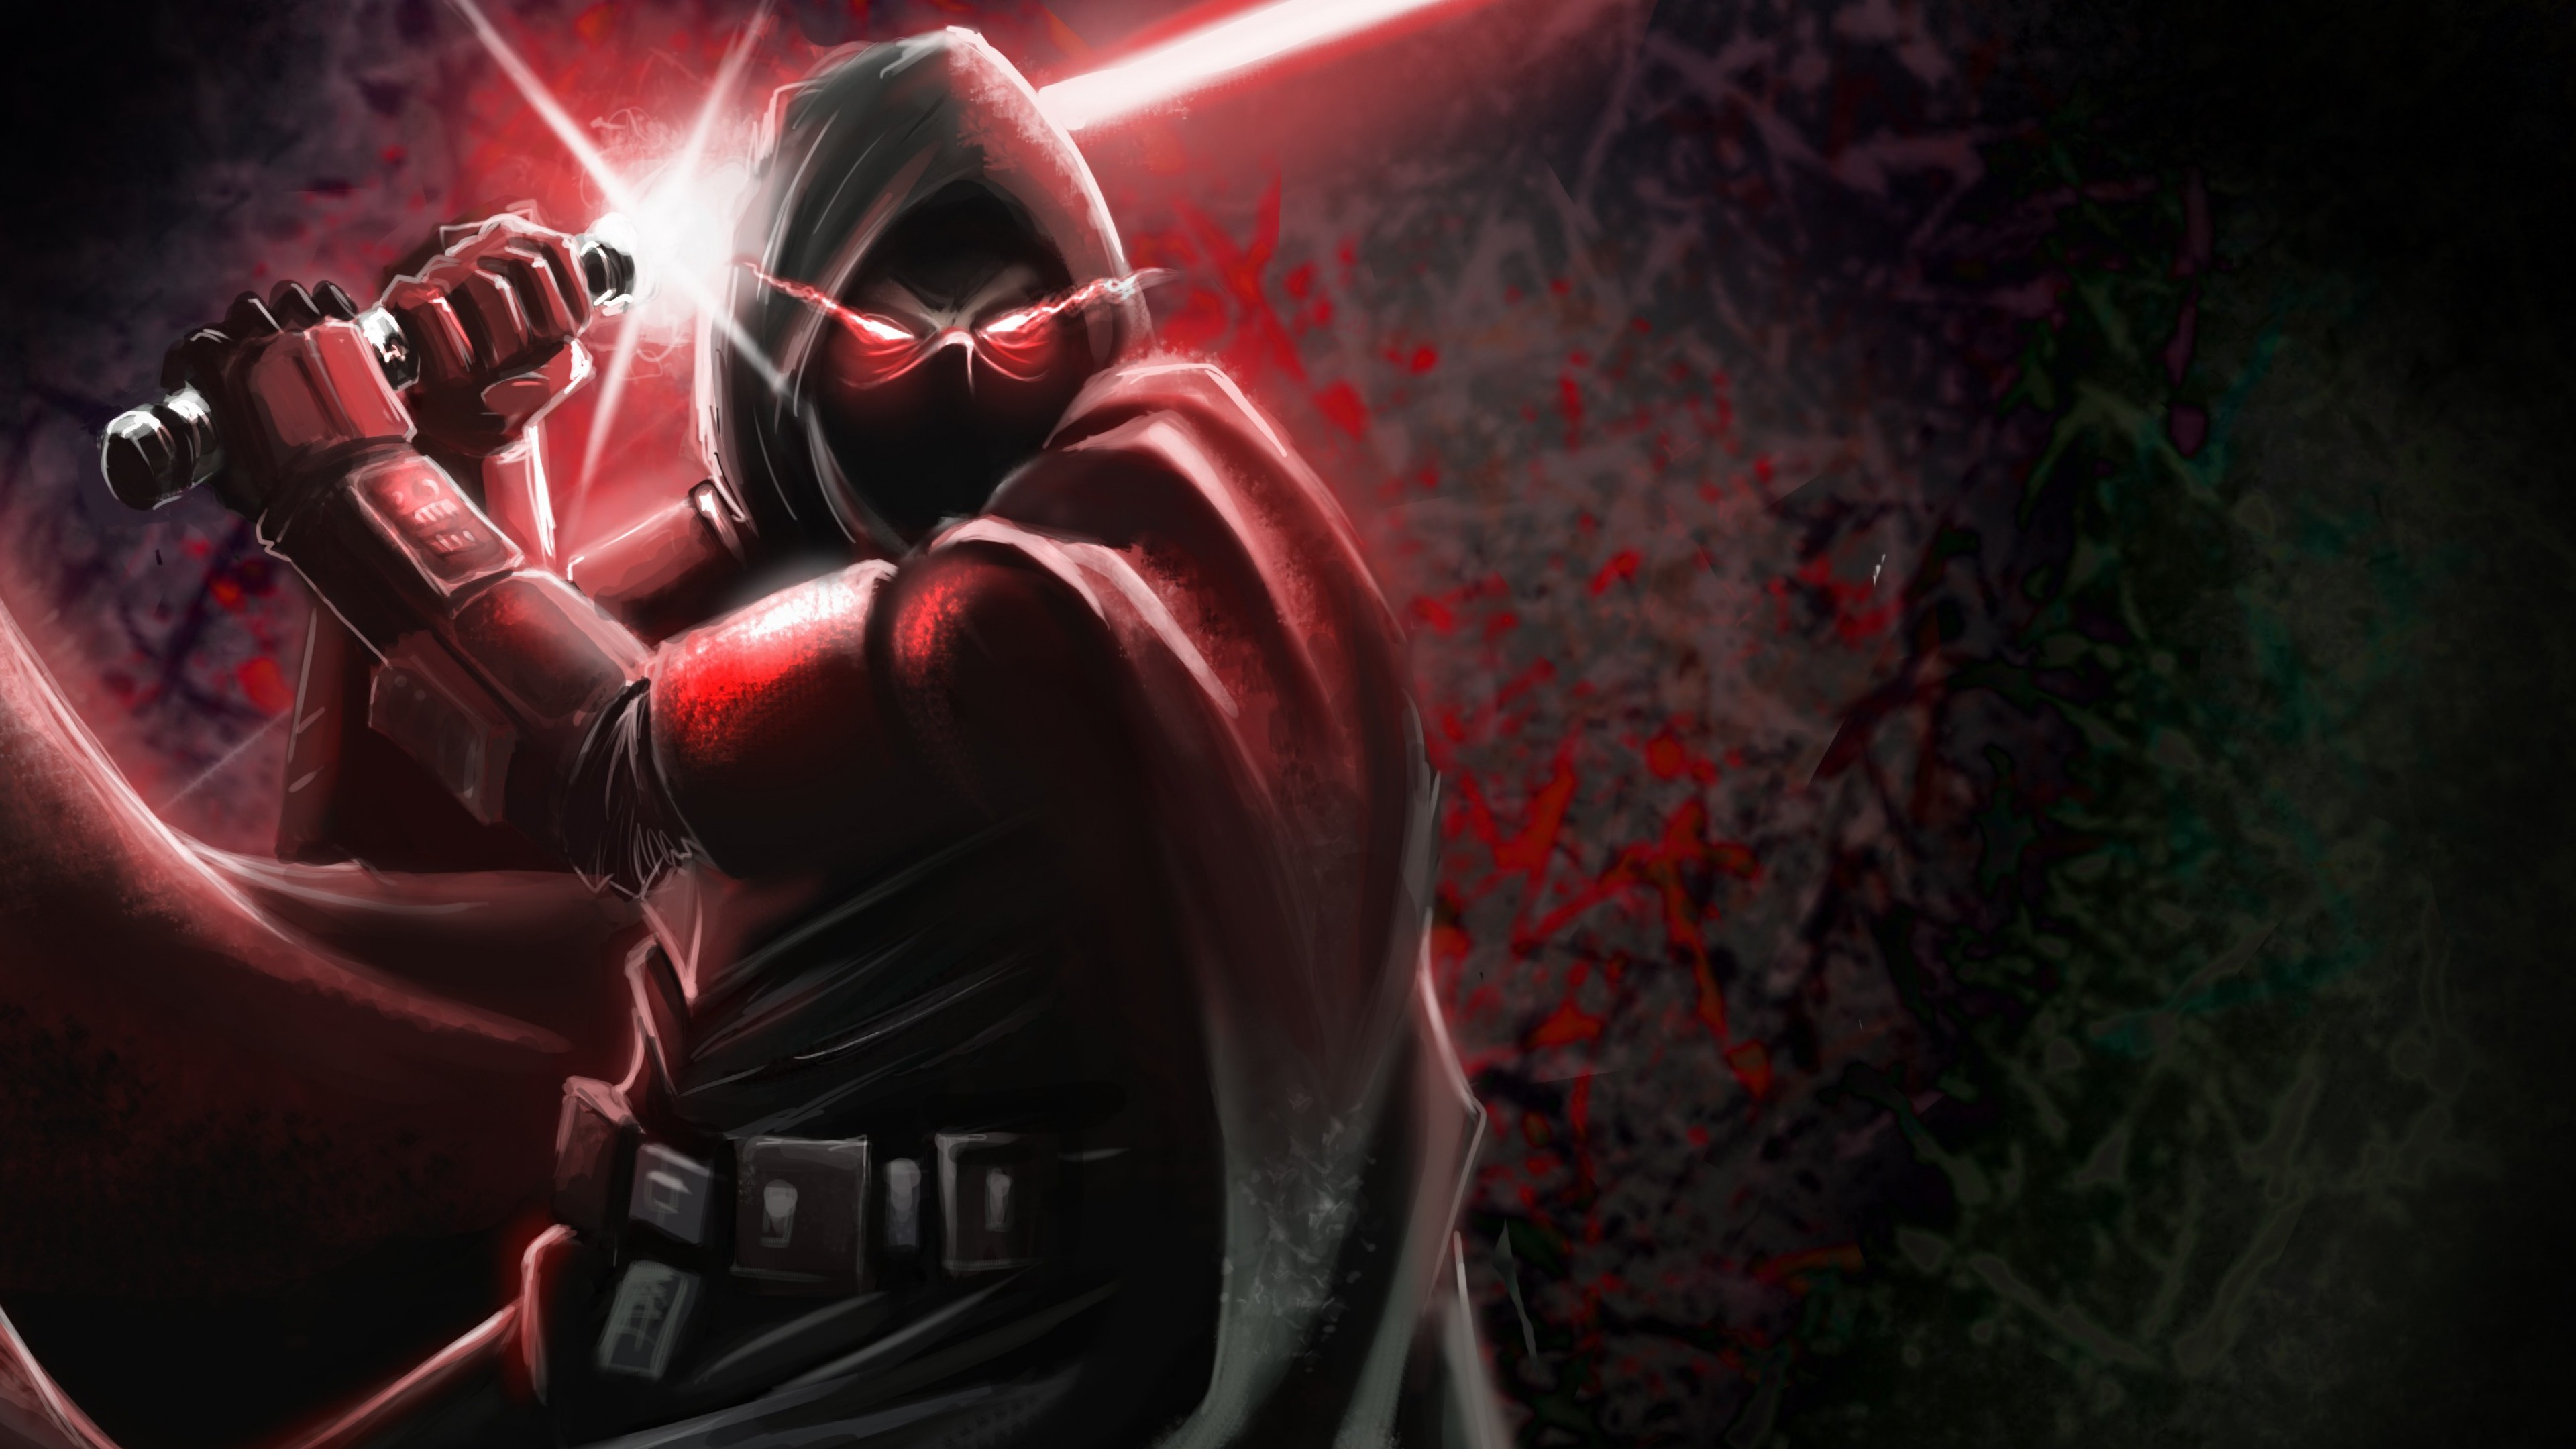 3840x2160  Wallpaper sith, star wars, art, dark side